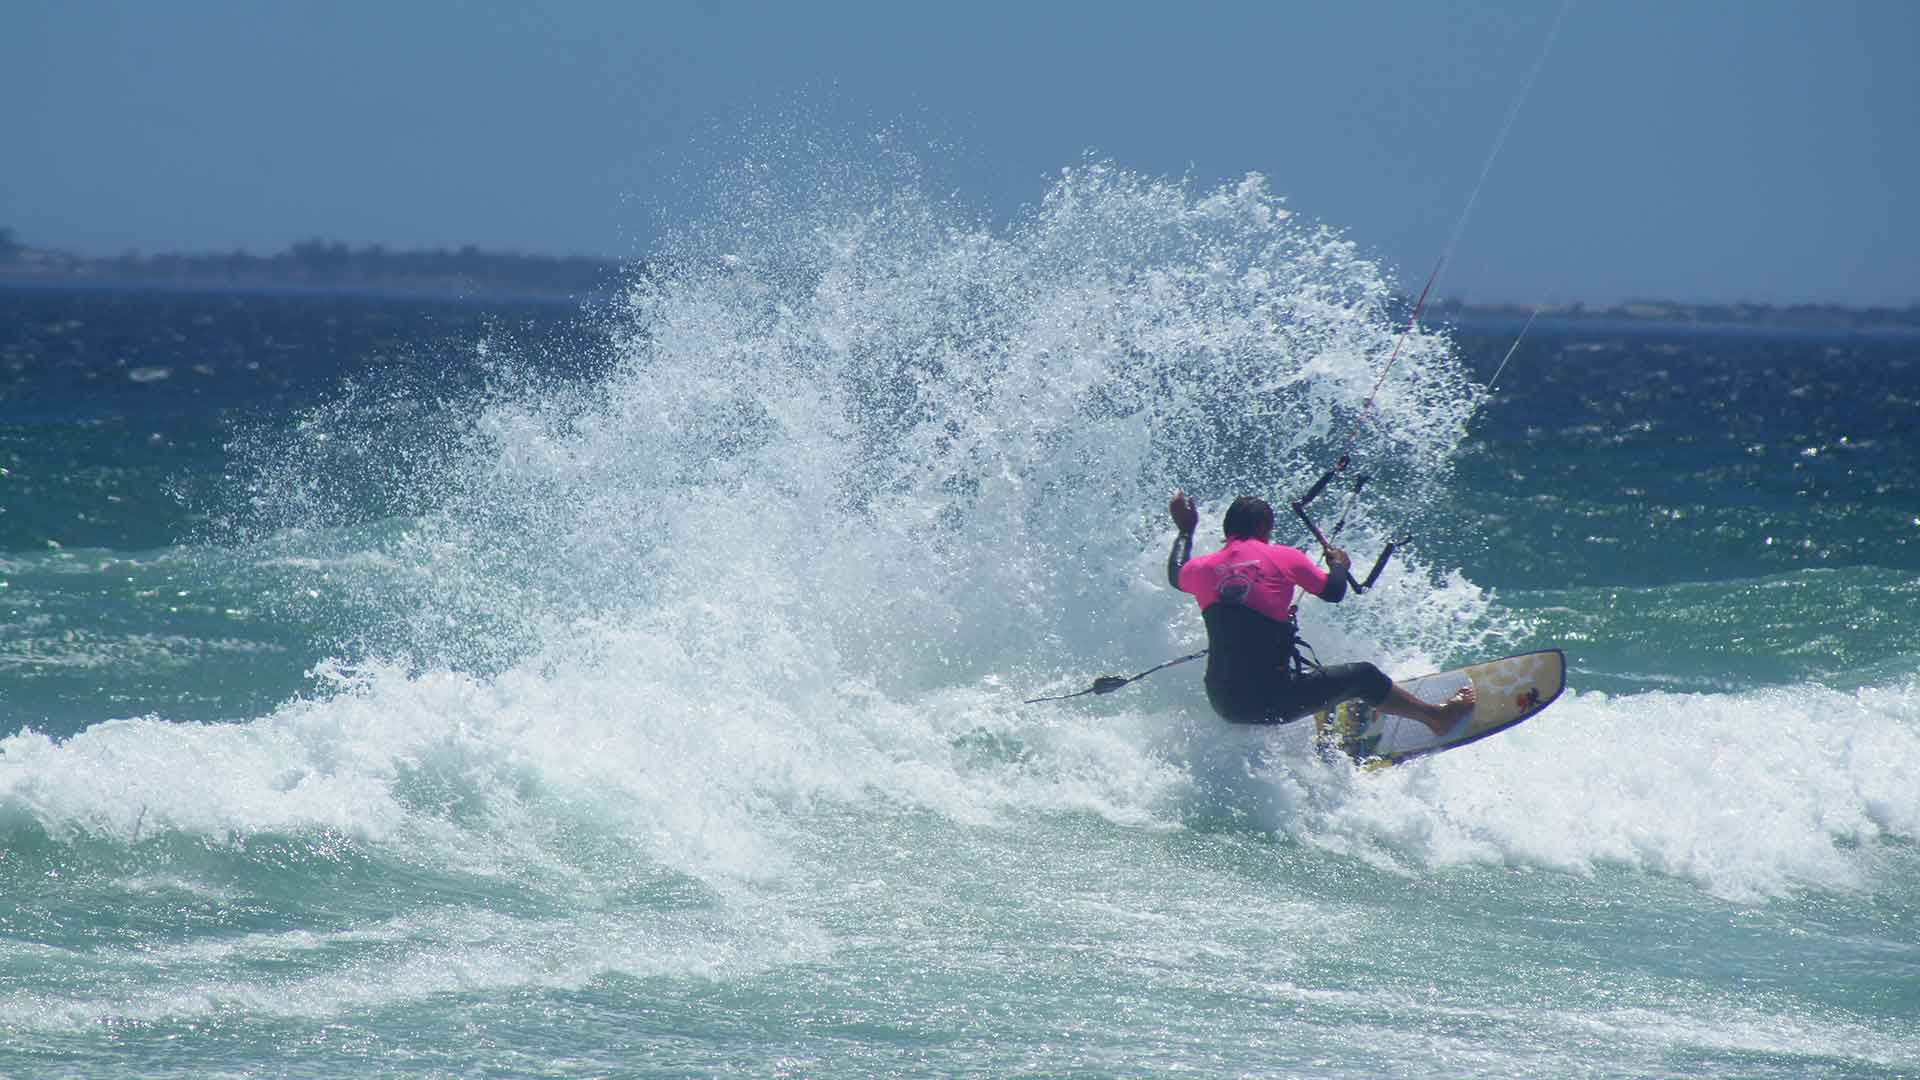 wave_kitesurfing_south_africa_4a